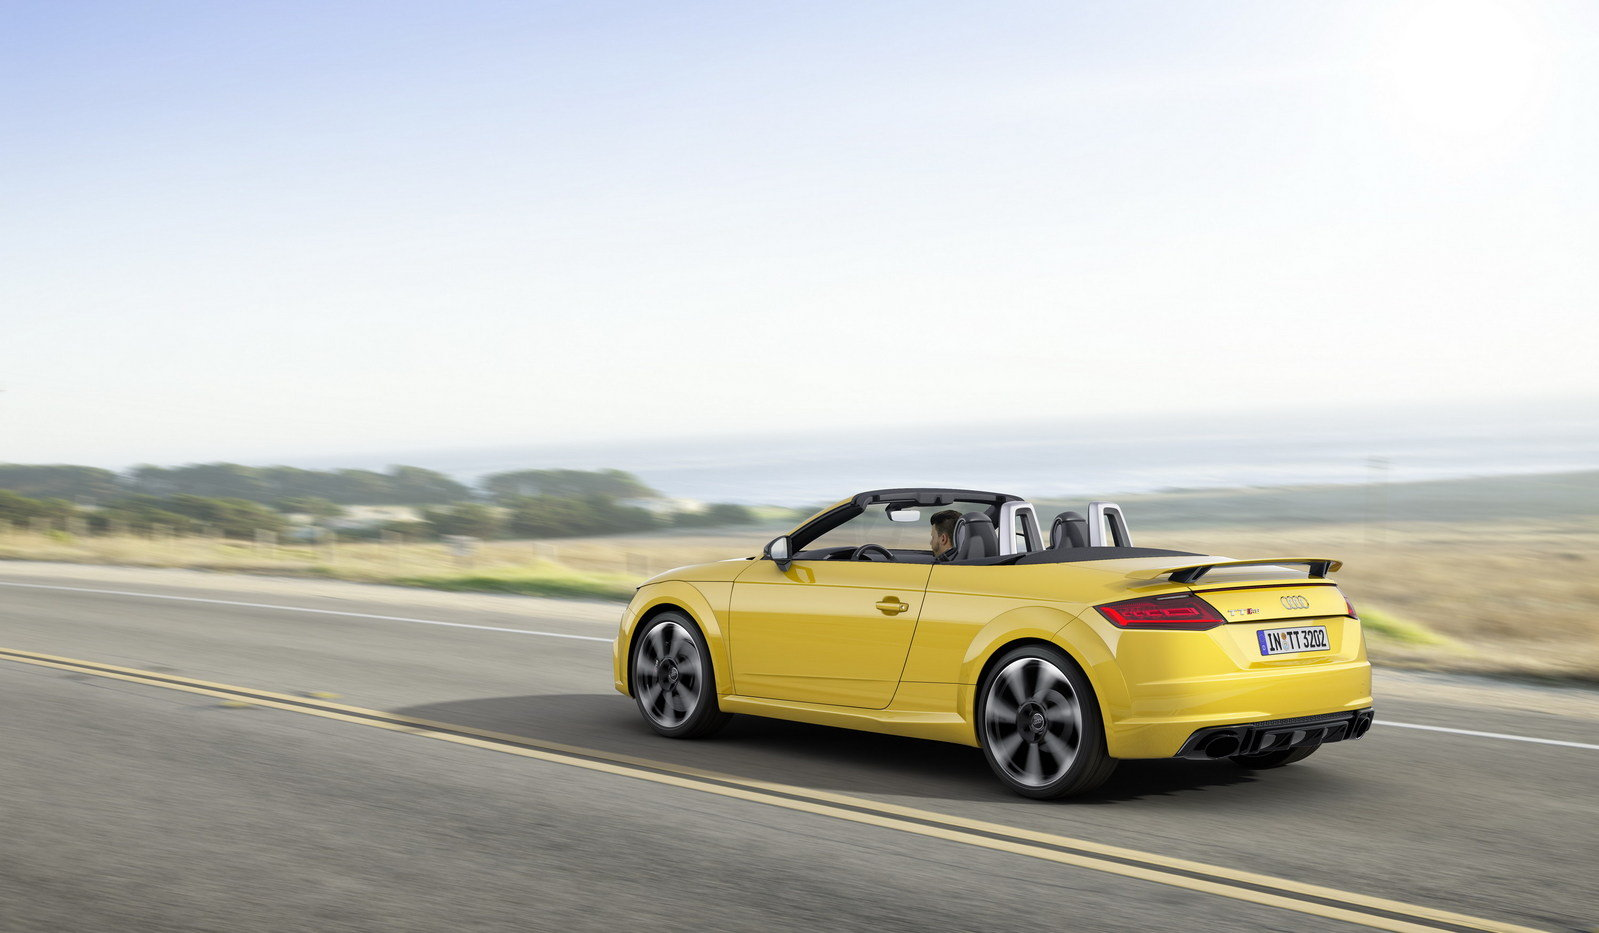 2018 Audi TT-RS Roadster - Picture 673859 | car review ...